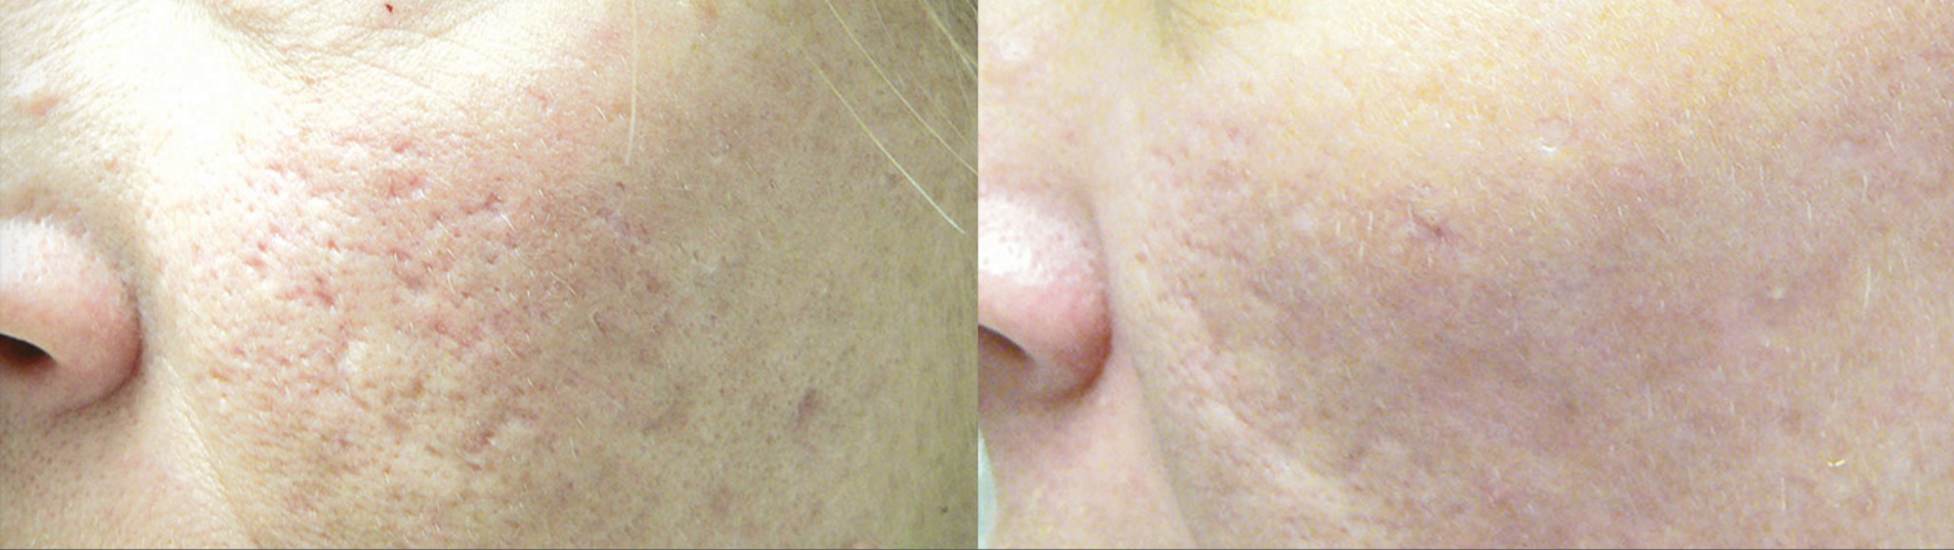 image of LaseMD device which is now available at Spring Street Dermatology in NYC